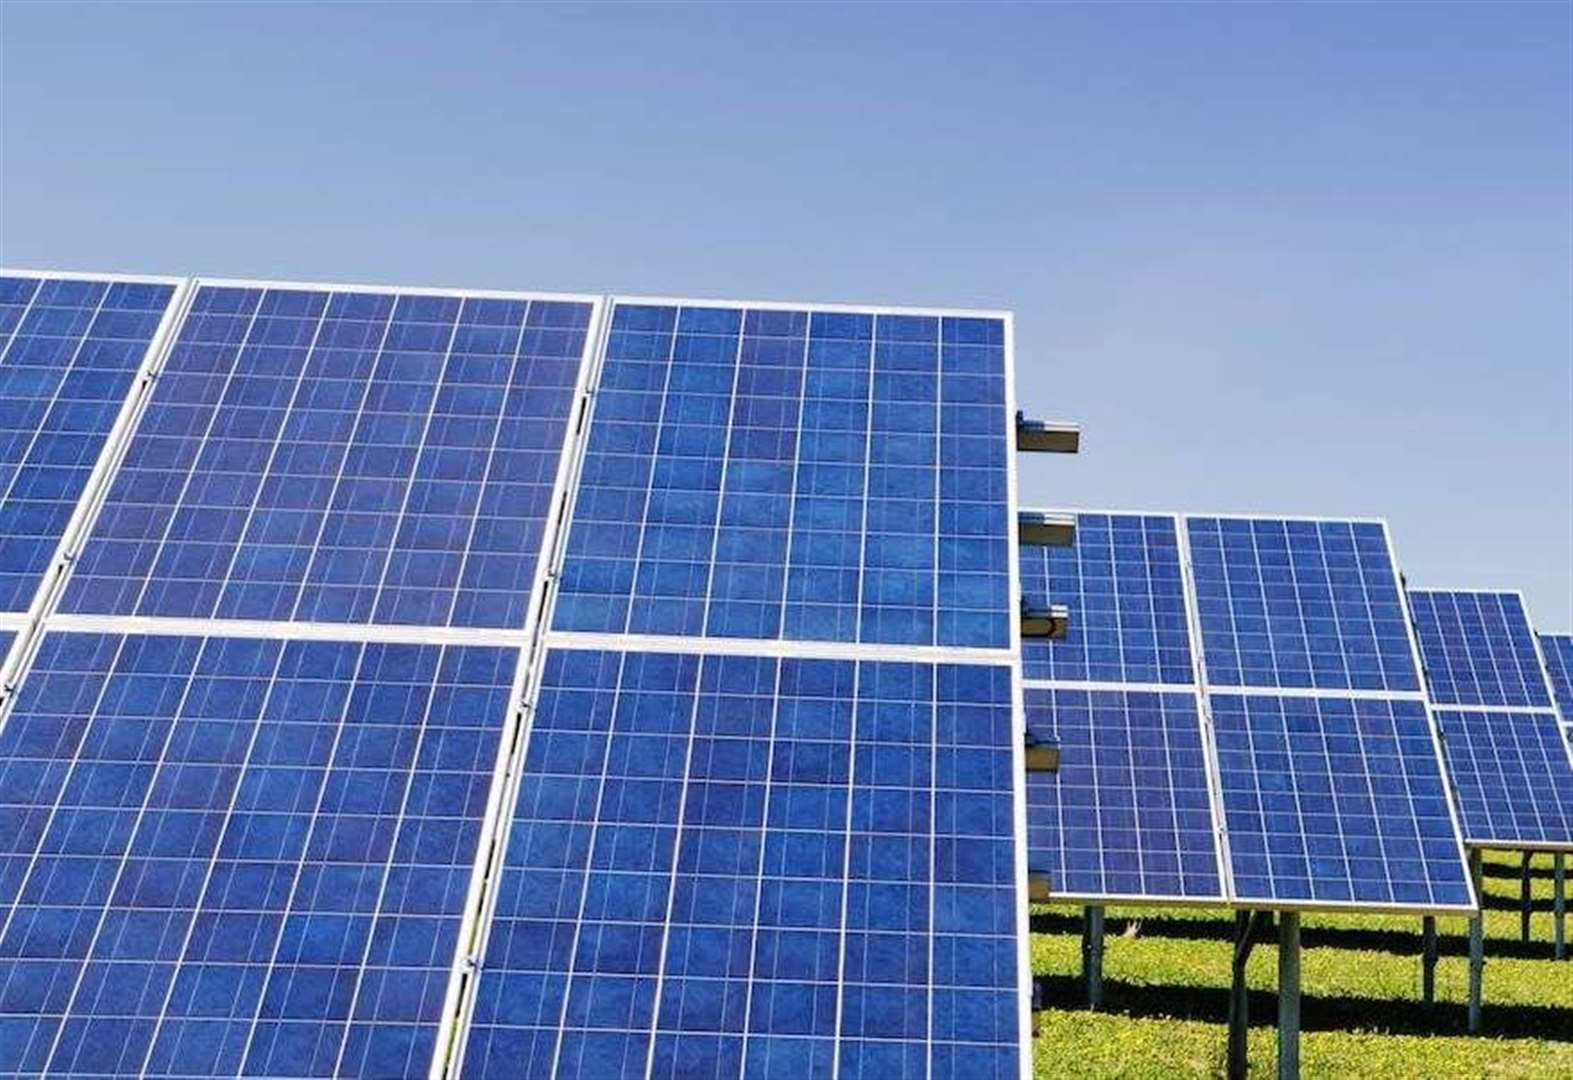 Firm to shed light on solar scheme